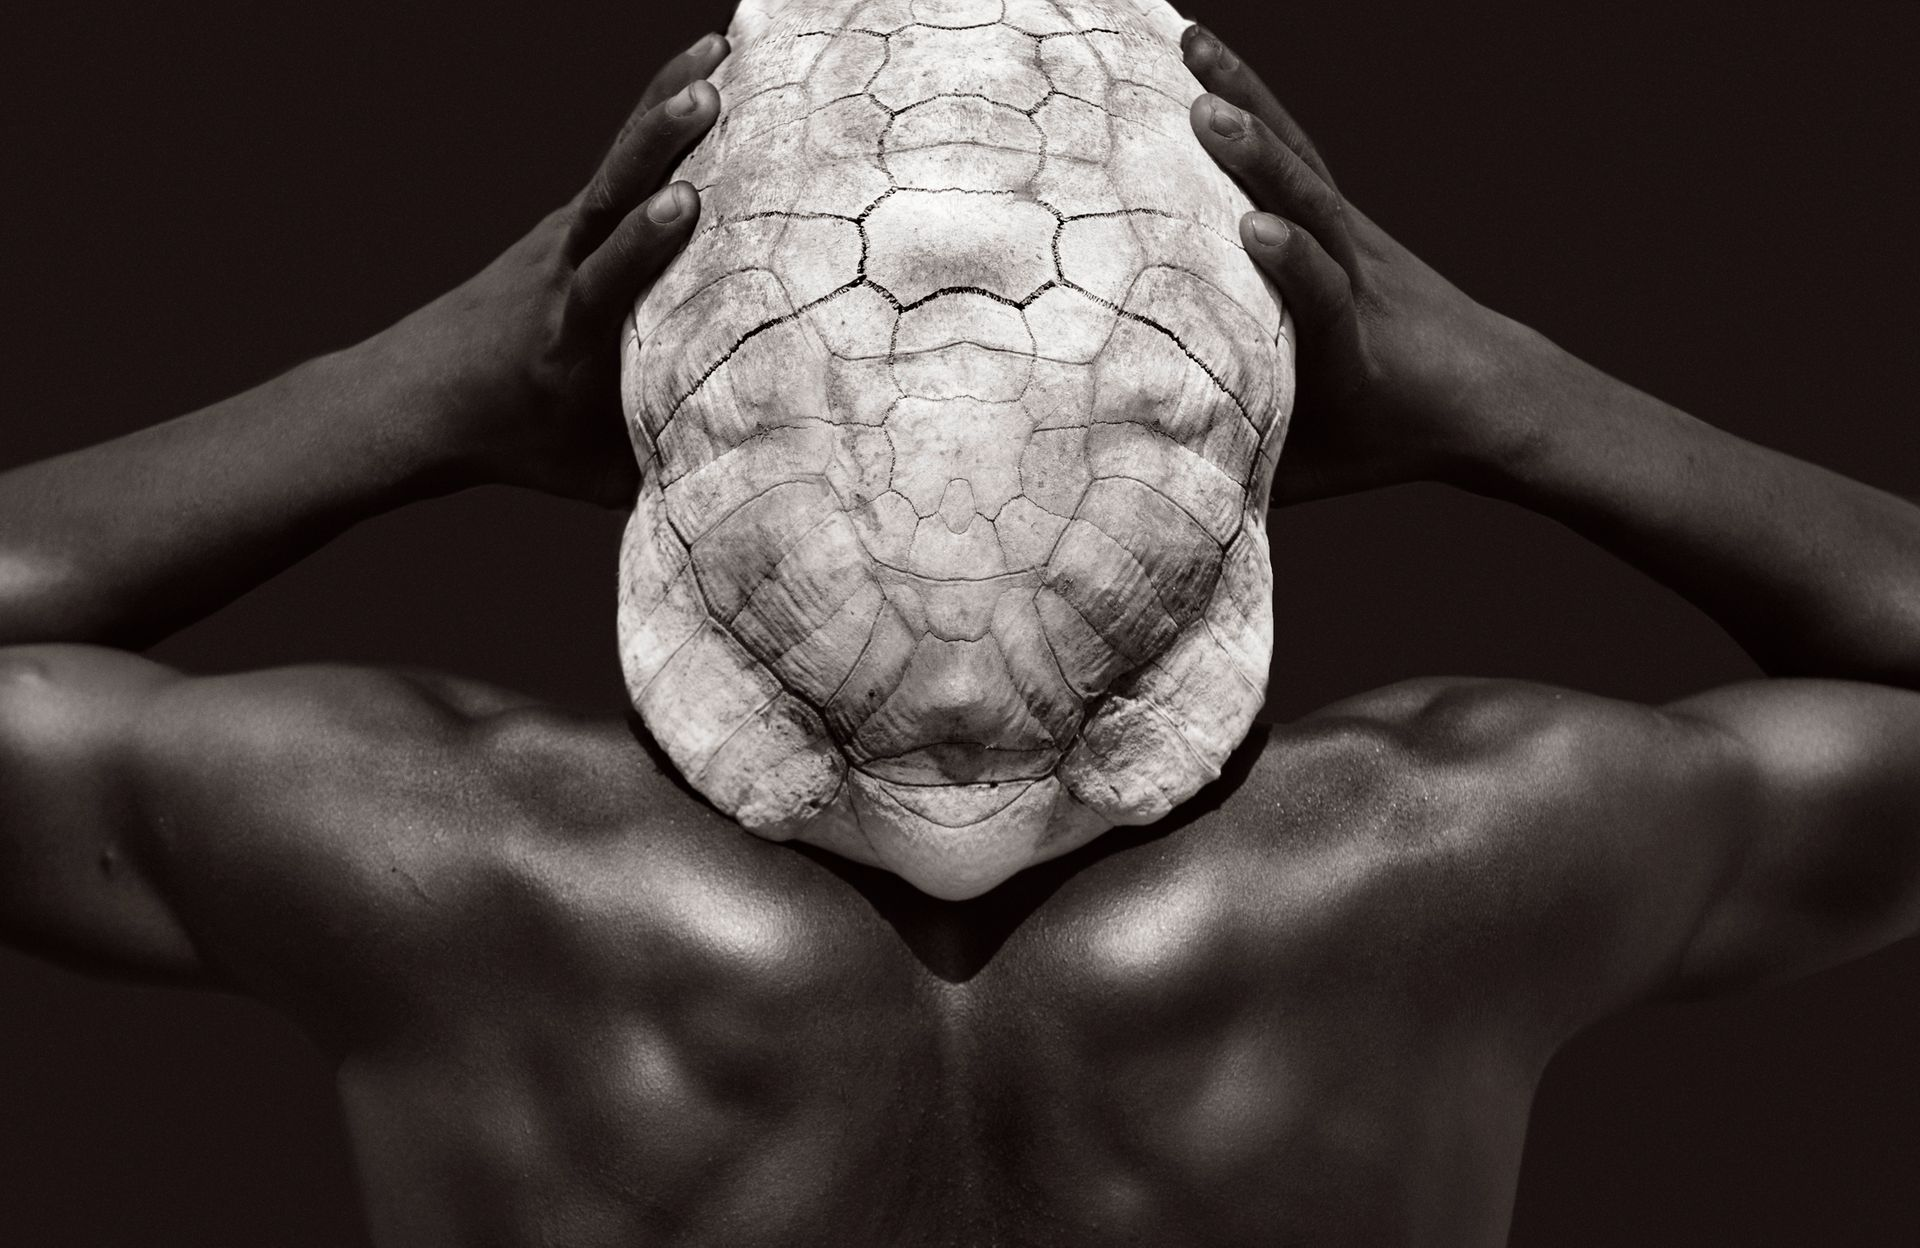 Omo-People-Drew-Doggett-africa-tribe-turtle-shell-hat-muscular-man-back-Untitled-5.jpg